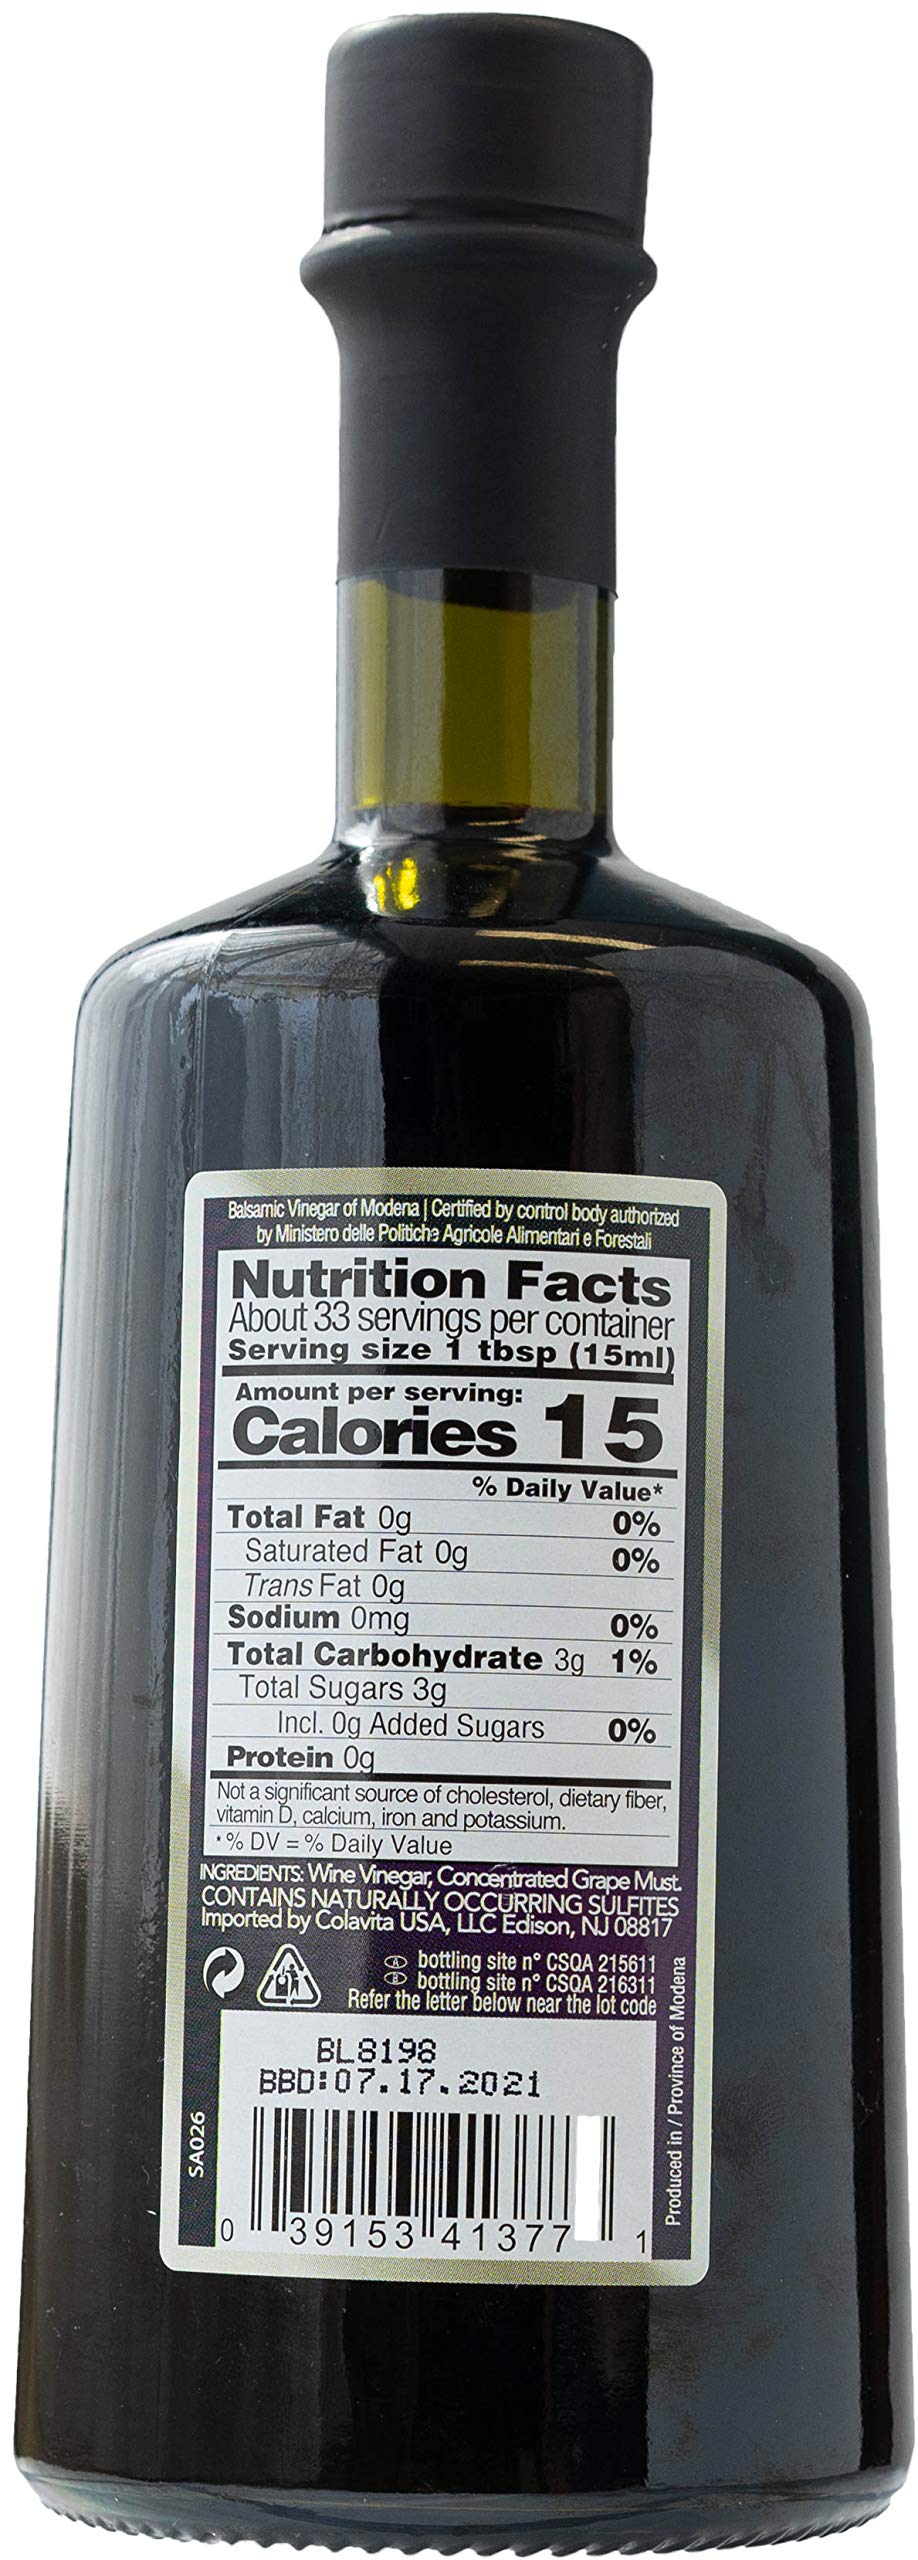 Santa Ninfa Balsamic Vinegar of Modena IGP, 17 Fl Oz Glass Bottle, (Pack of 2) 2 Ships in Amazon Certified Frustration-Free Packaging Pack of two Balsamic Vinegar of Modena, Italy, 17 oz Glass Bottles This Balsamic vinegar is matured in wooden casks to achieve a complex flavor balancing sweetness and acidity.